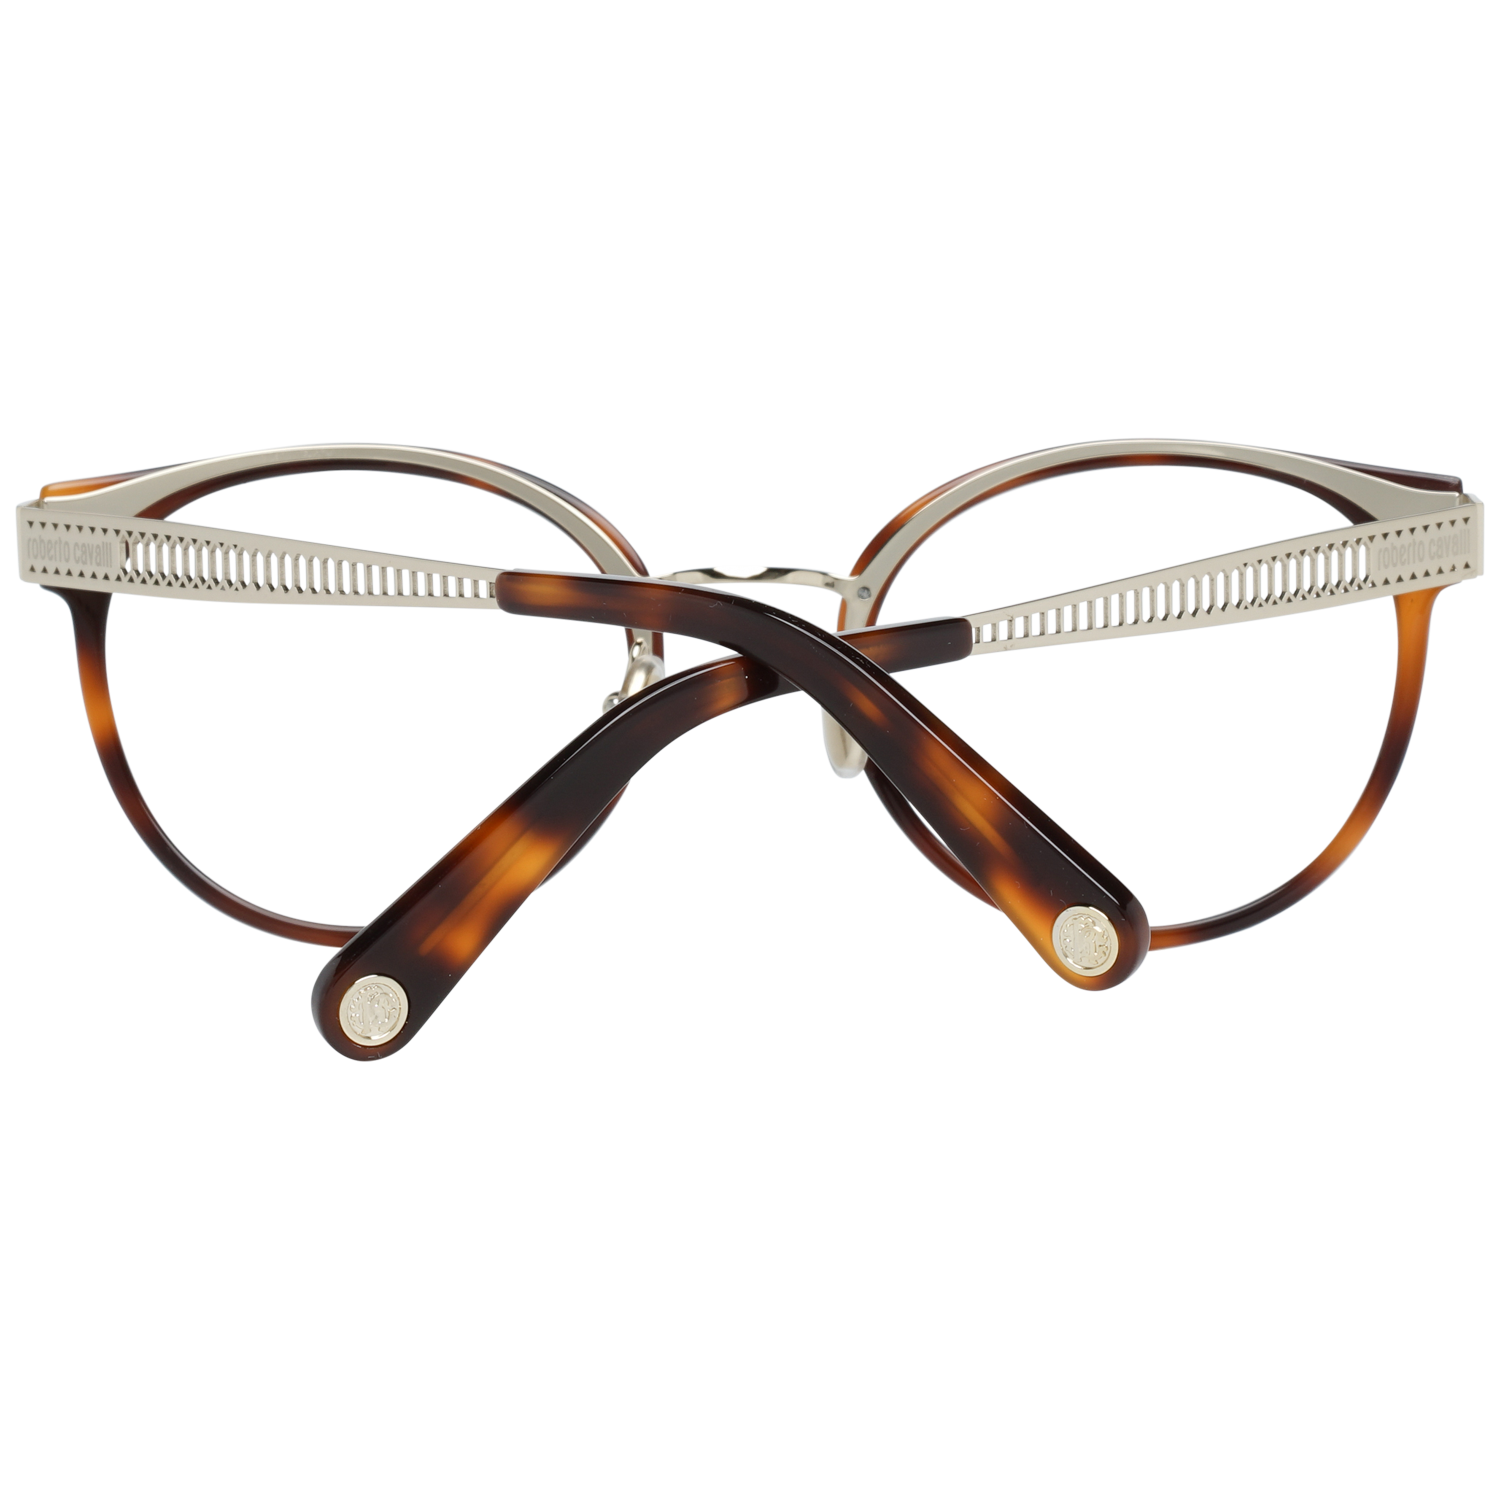 Roberto Cavalli Optical Frame RC5099 052 51 Women Brown